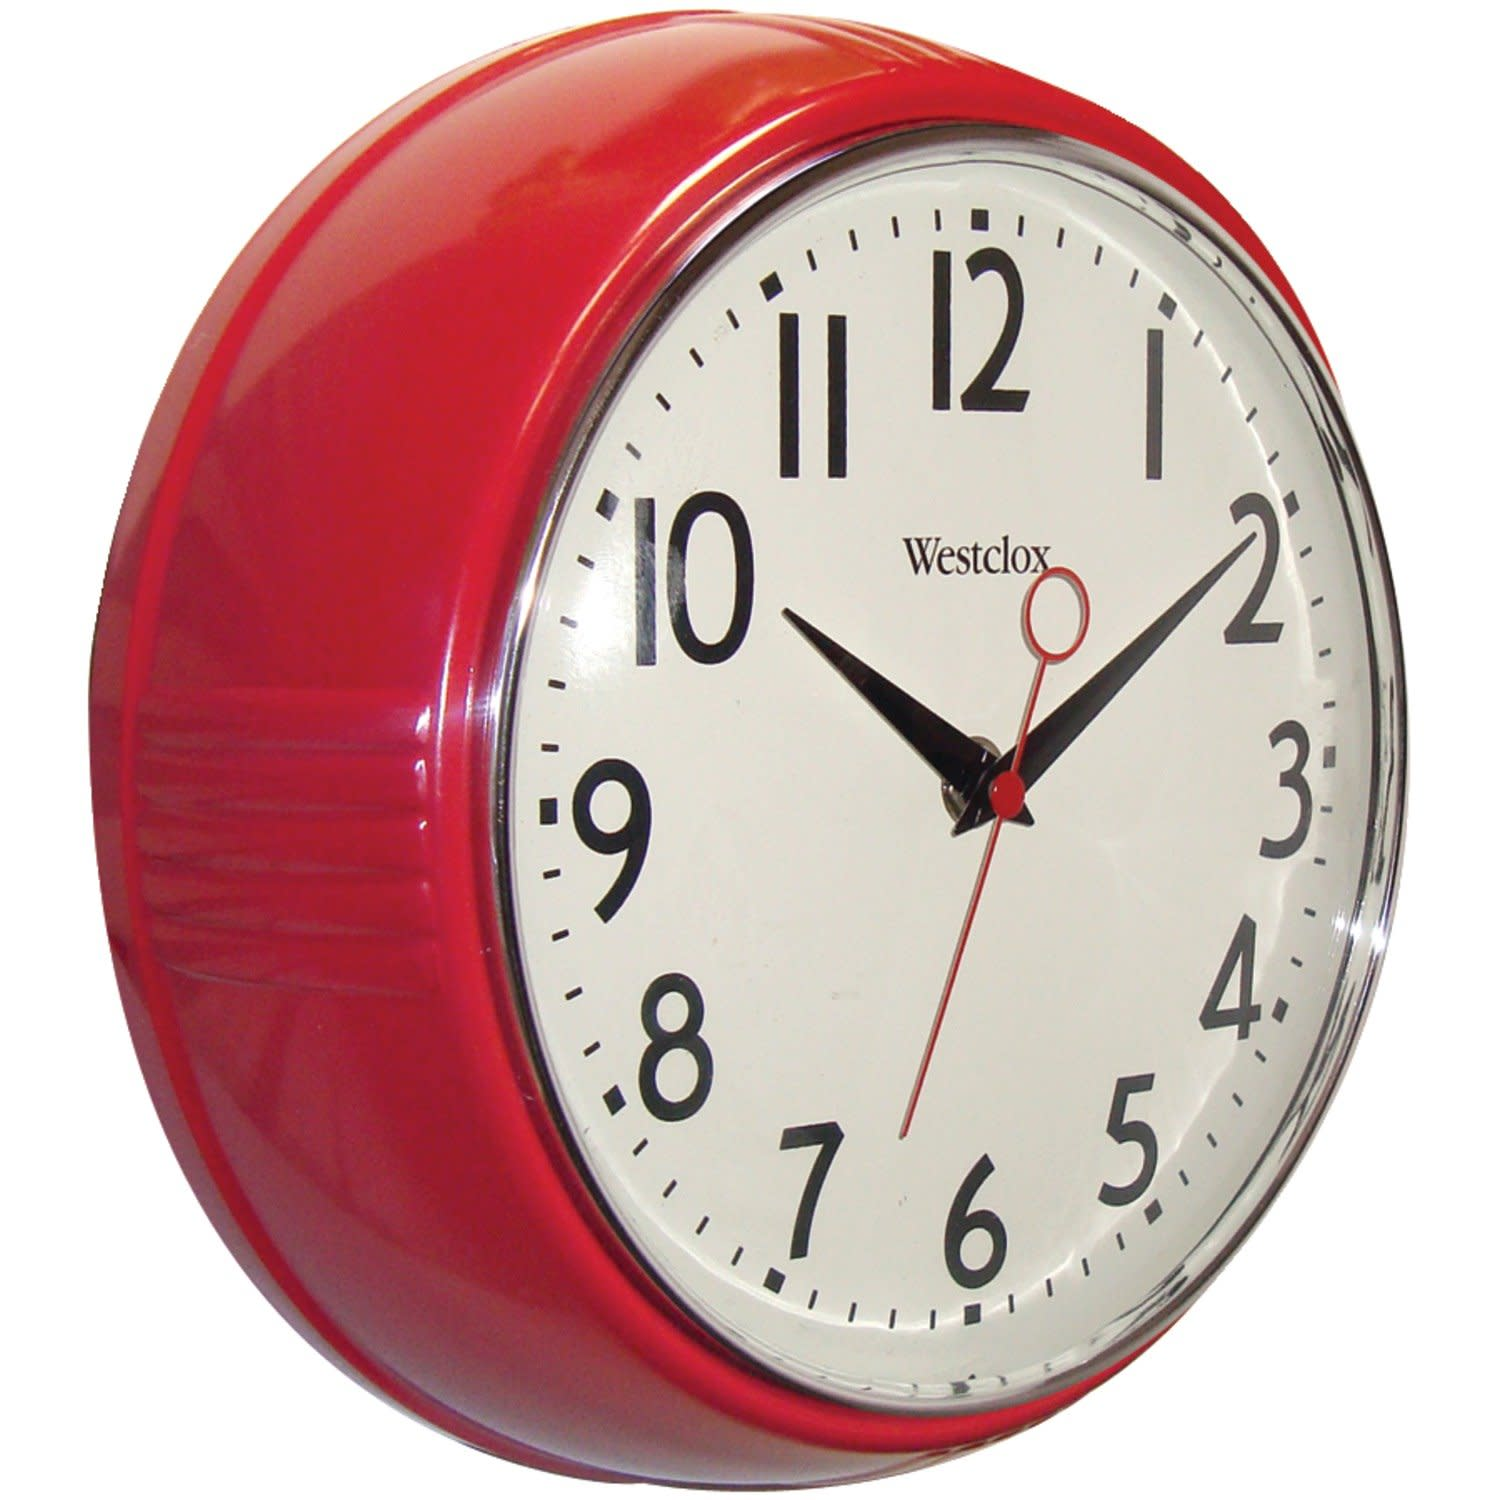 Retro Kitchen Wall Clock 1950s Decor Home Vintage Red Classic Style 9 5